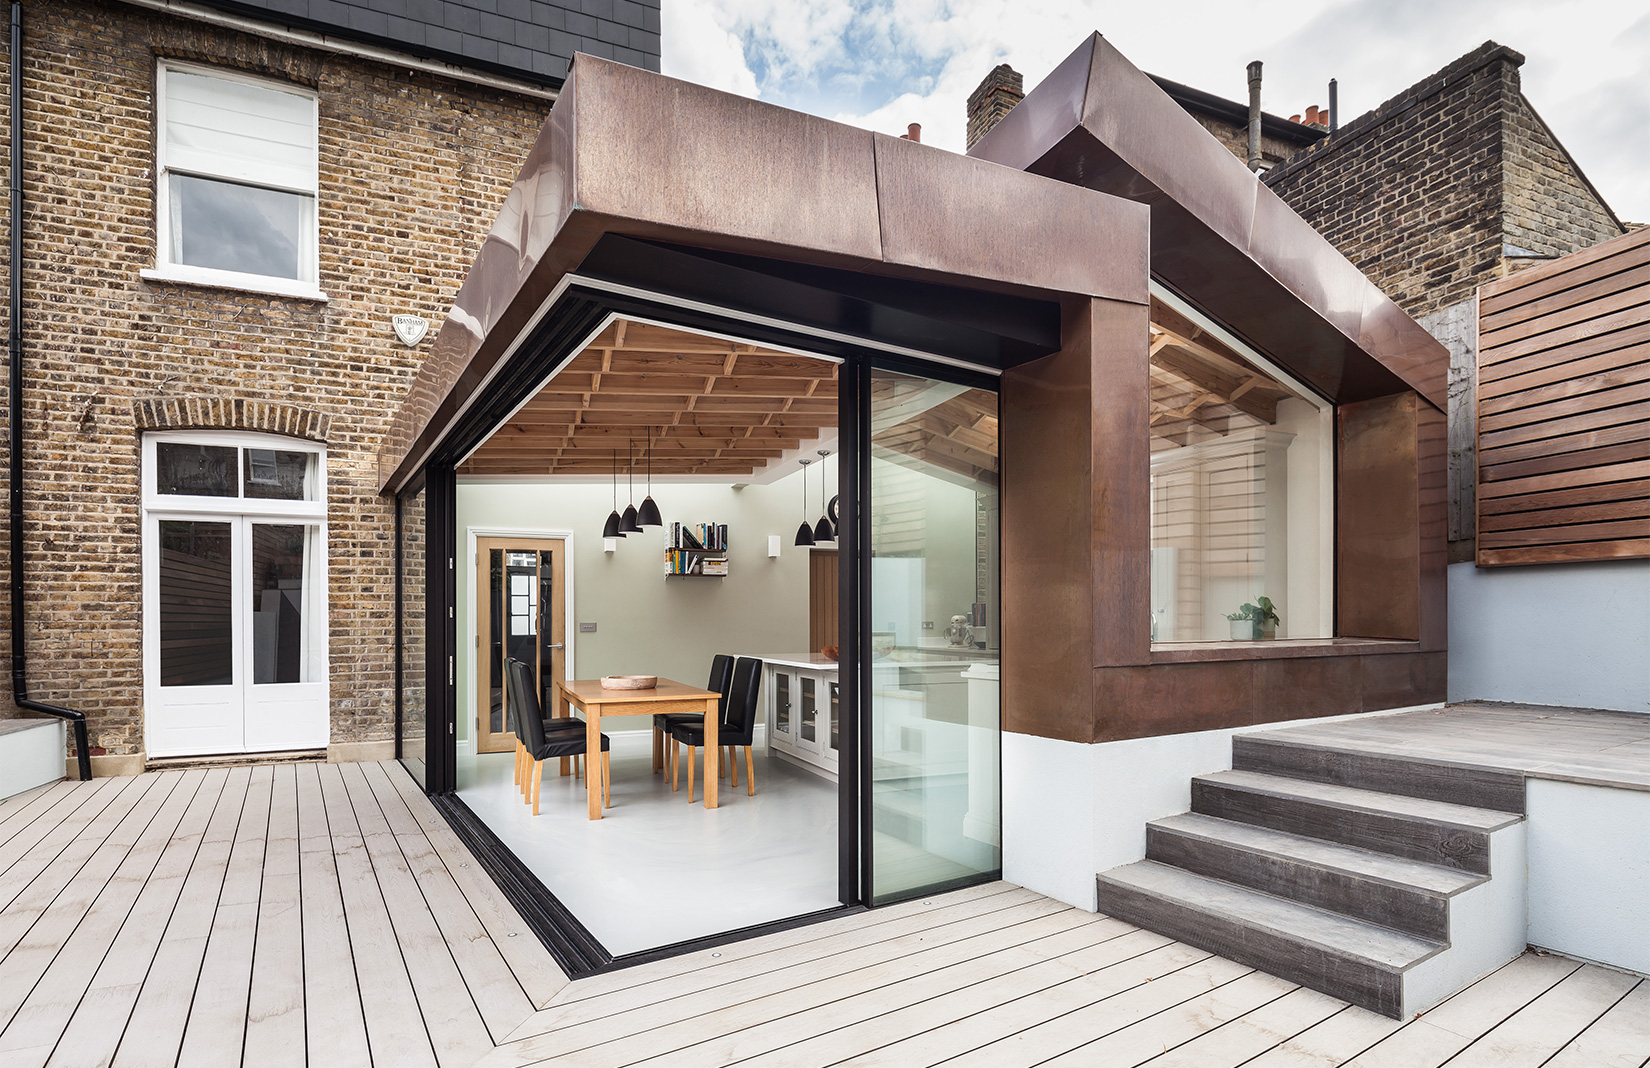 16 Ewelme Road by Uvarchitects. Photography: David Butler